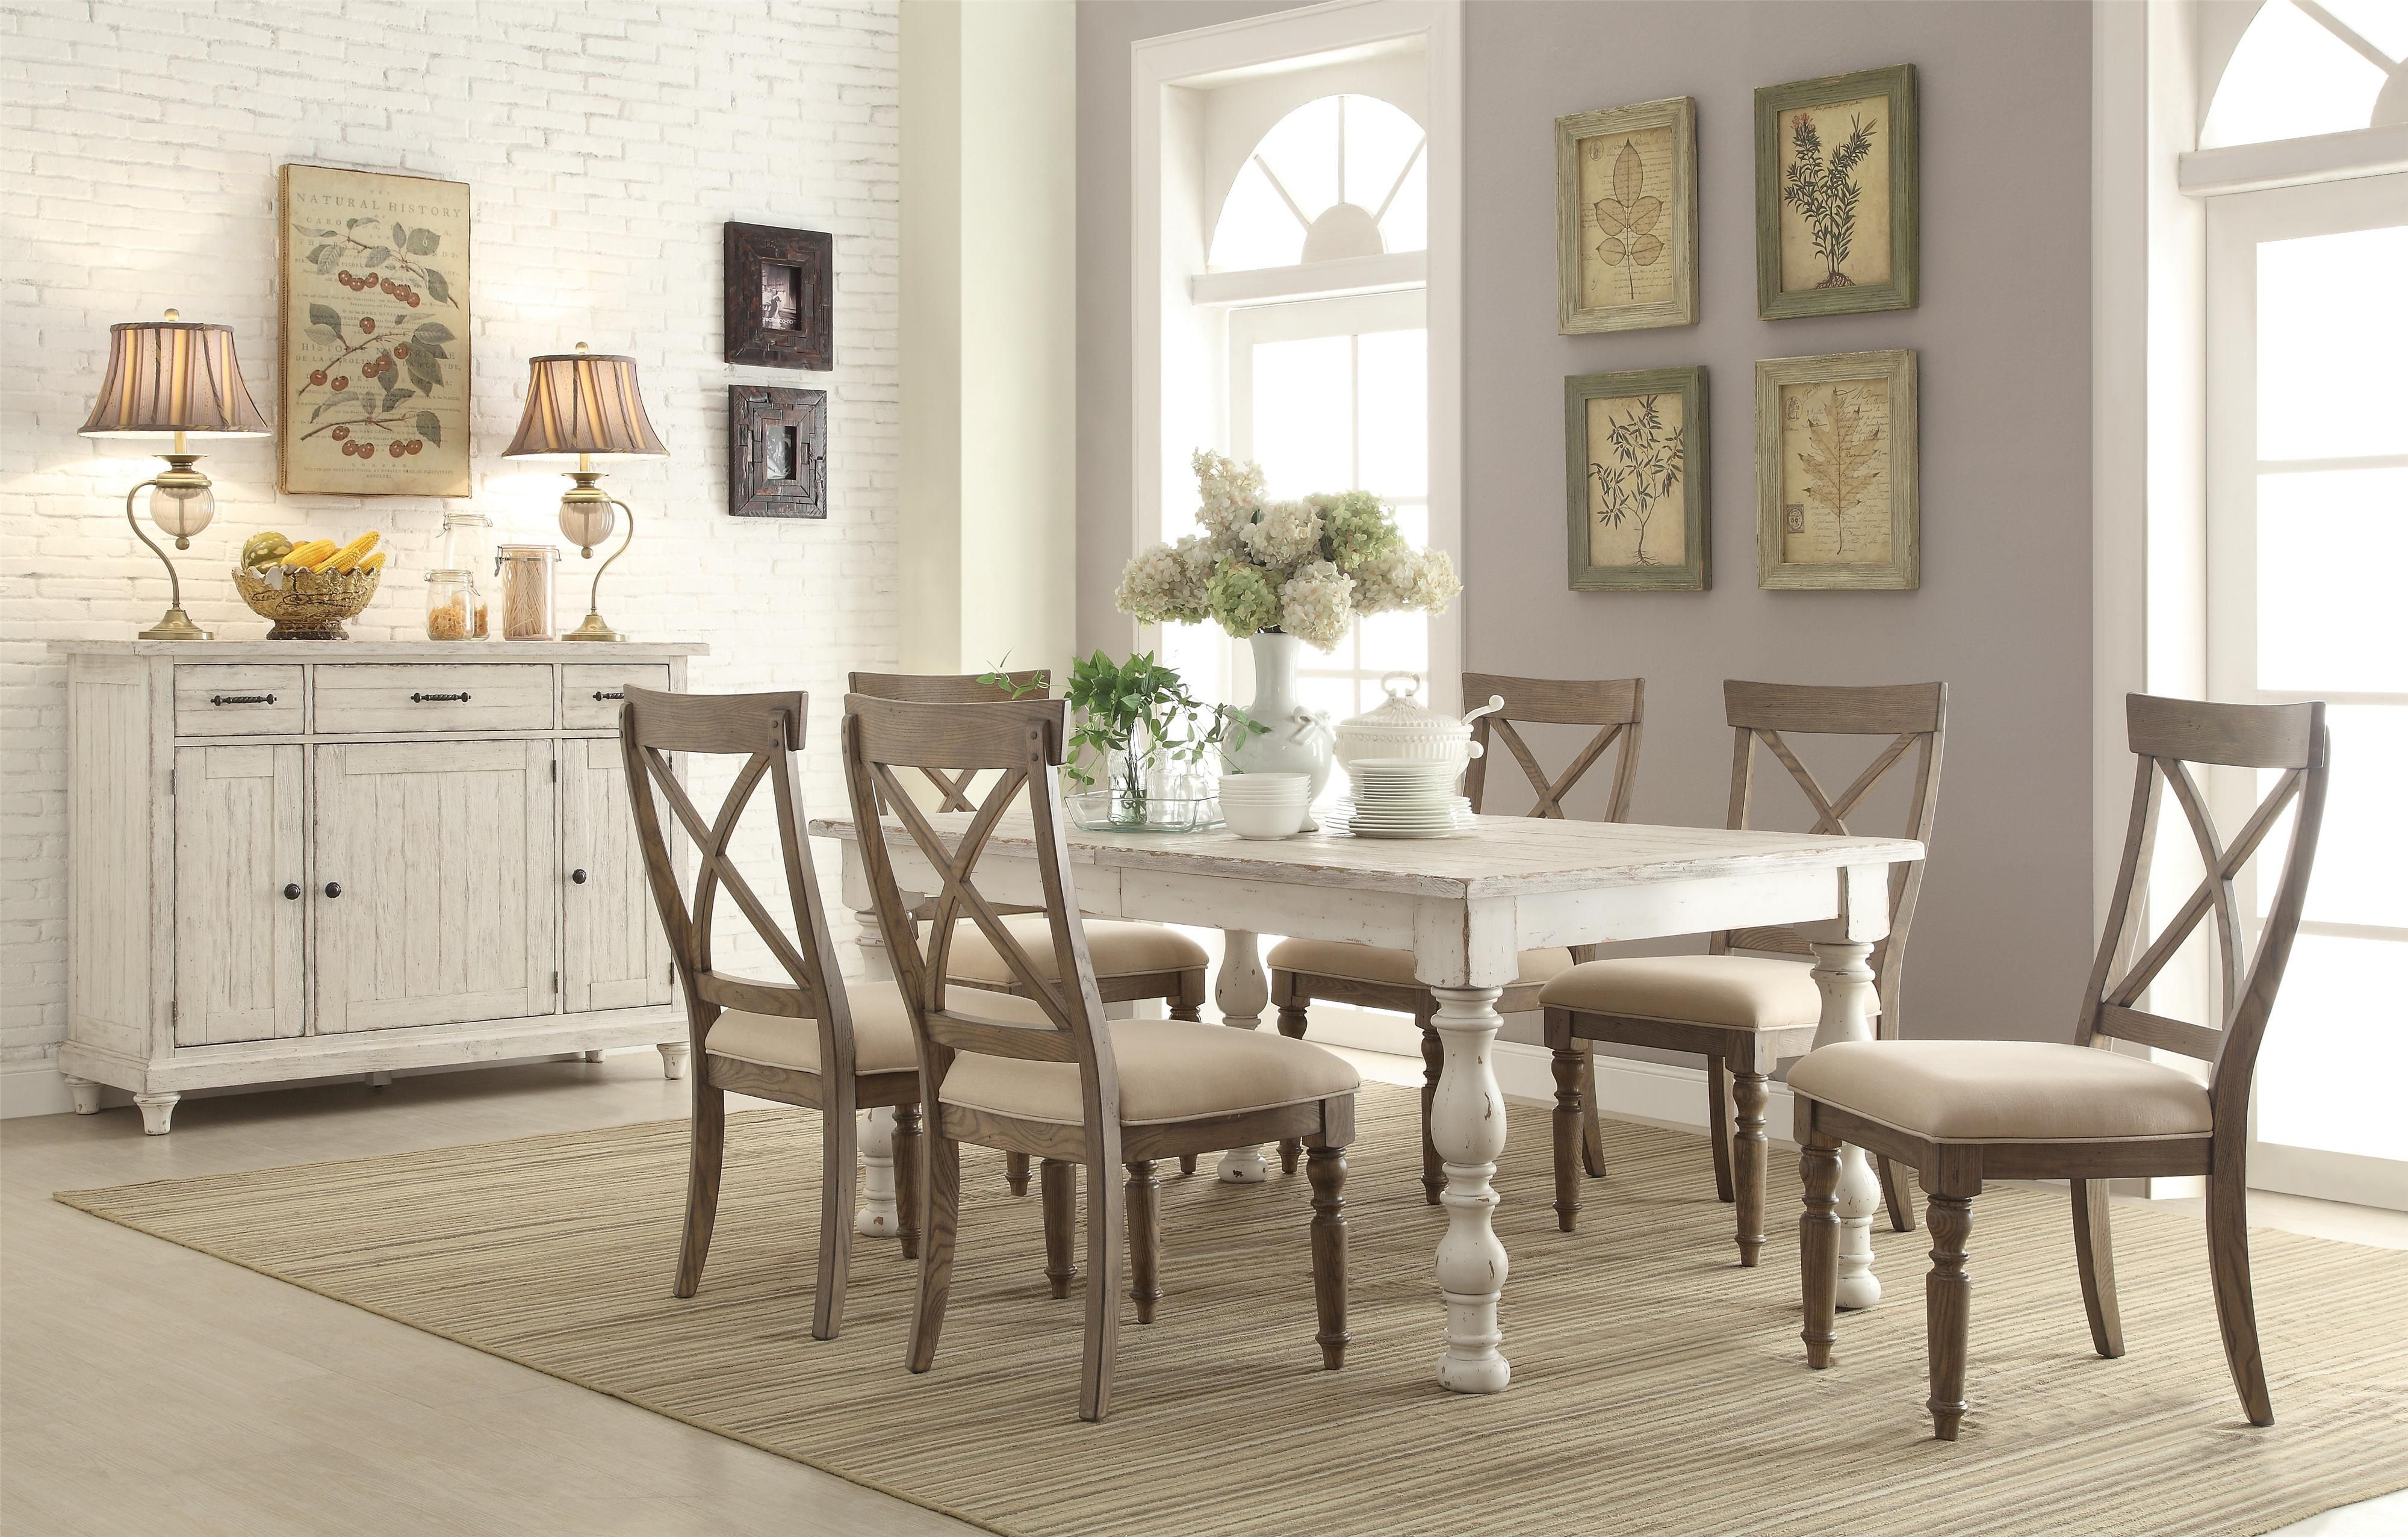 Add An Industrial Flair To Your Dining Room With Howell Furniture Classy Round Formal Dining Room Sets For 8 Design Decoration